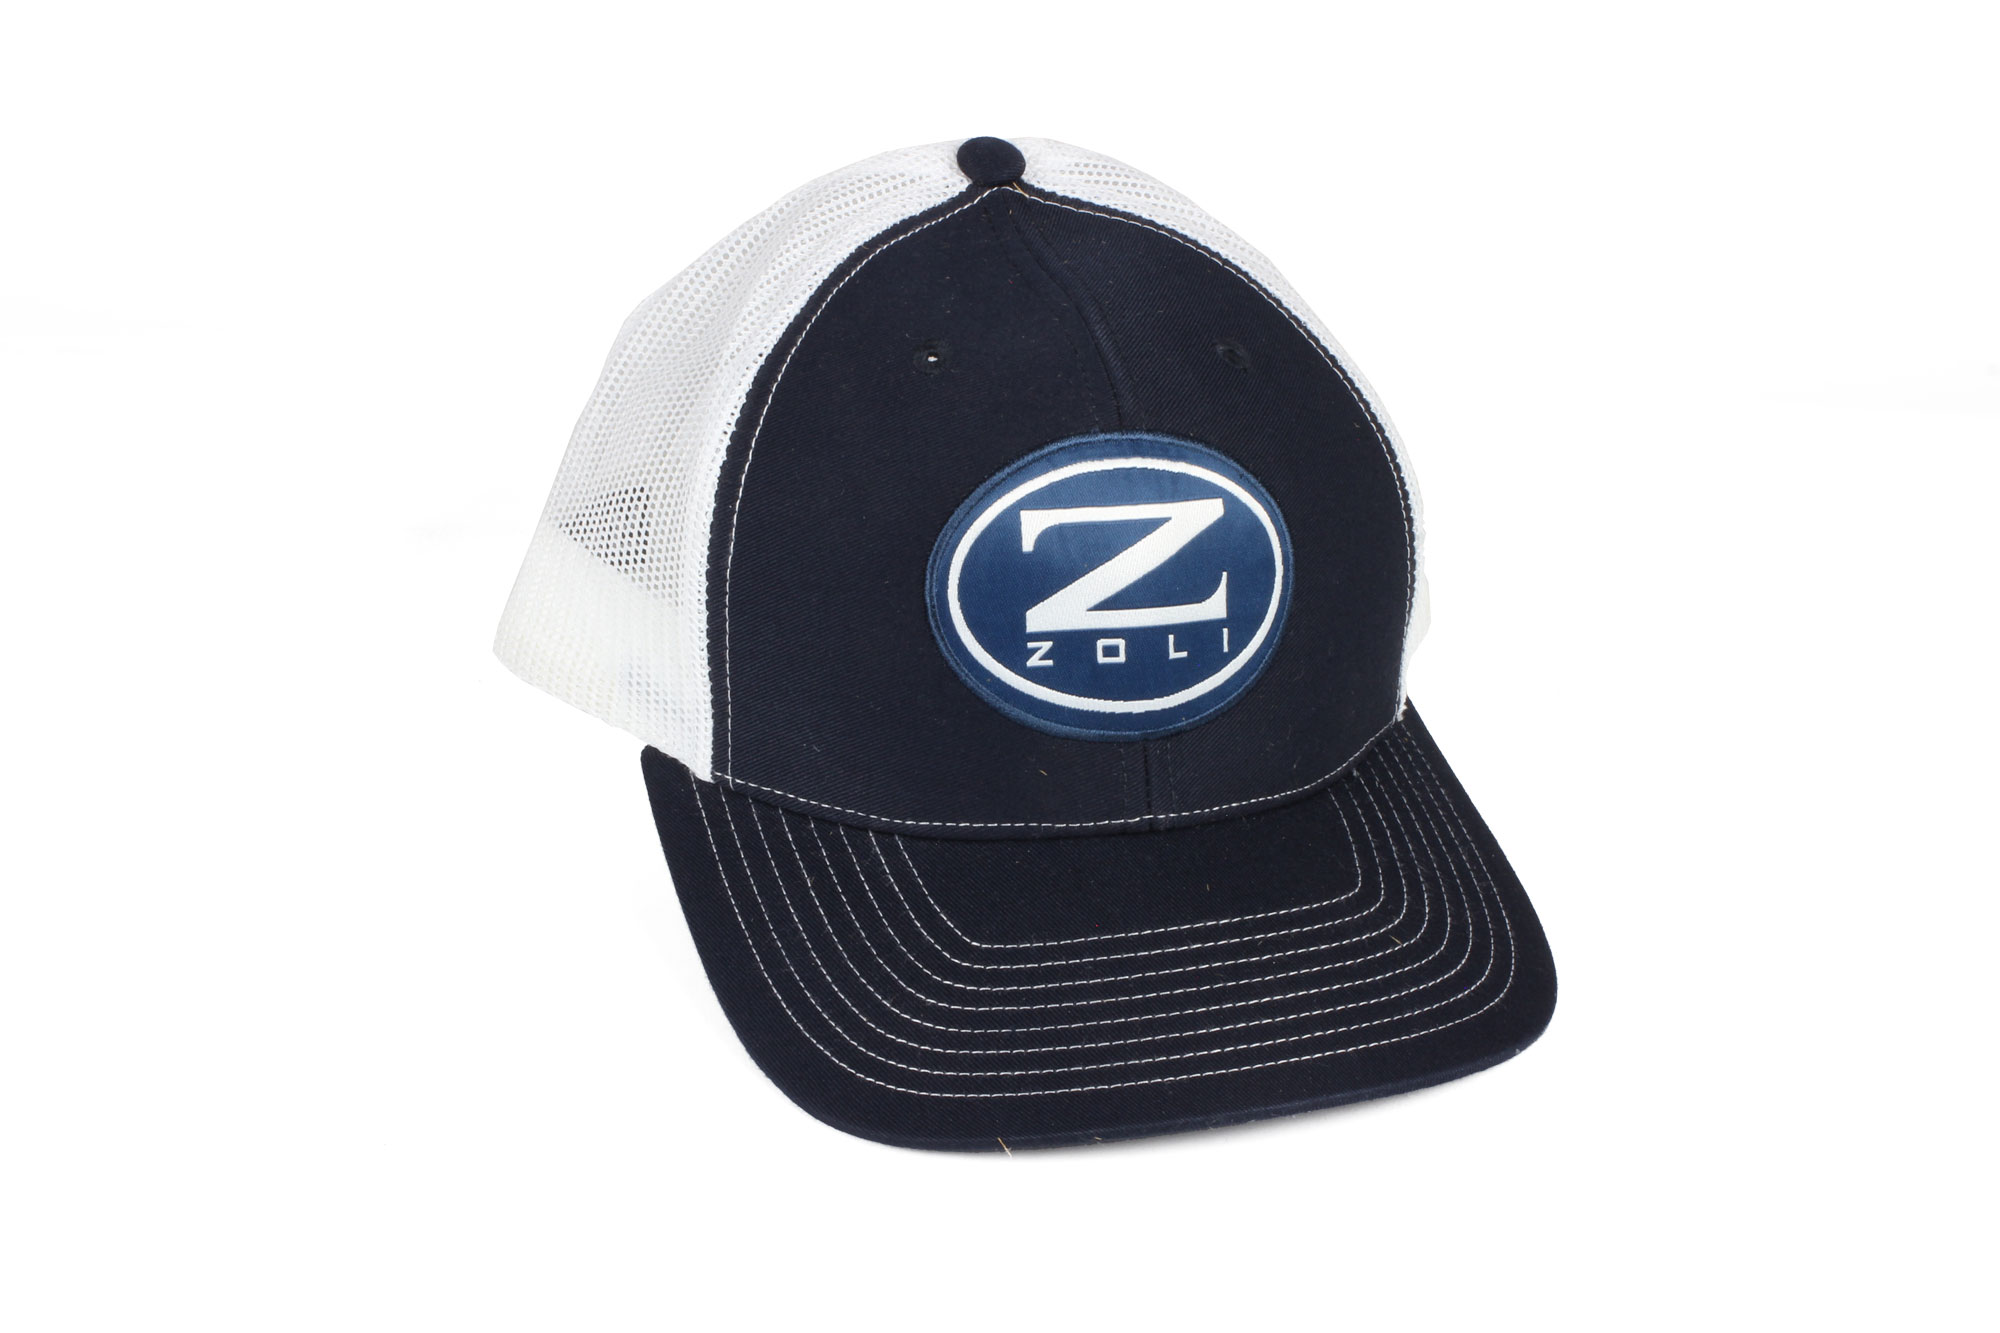 Zoli Navy Snapback Hat Patch